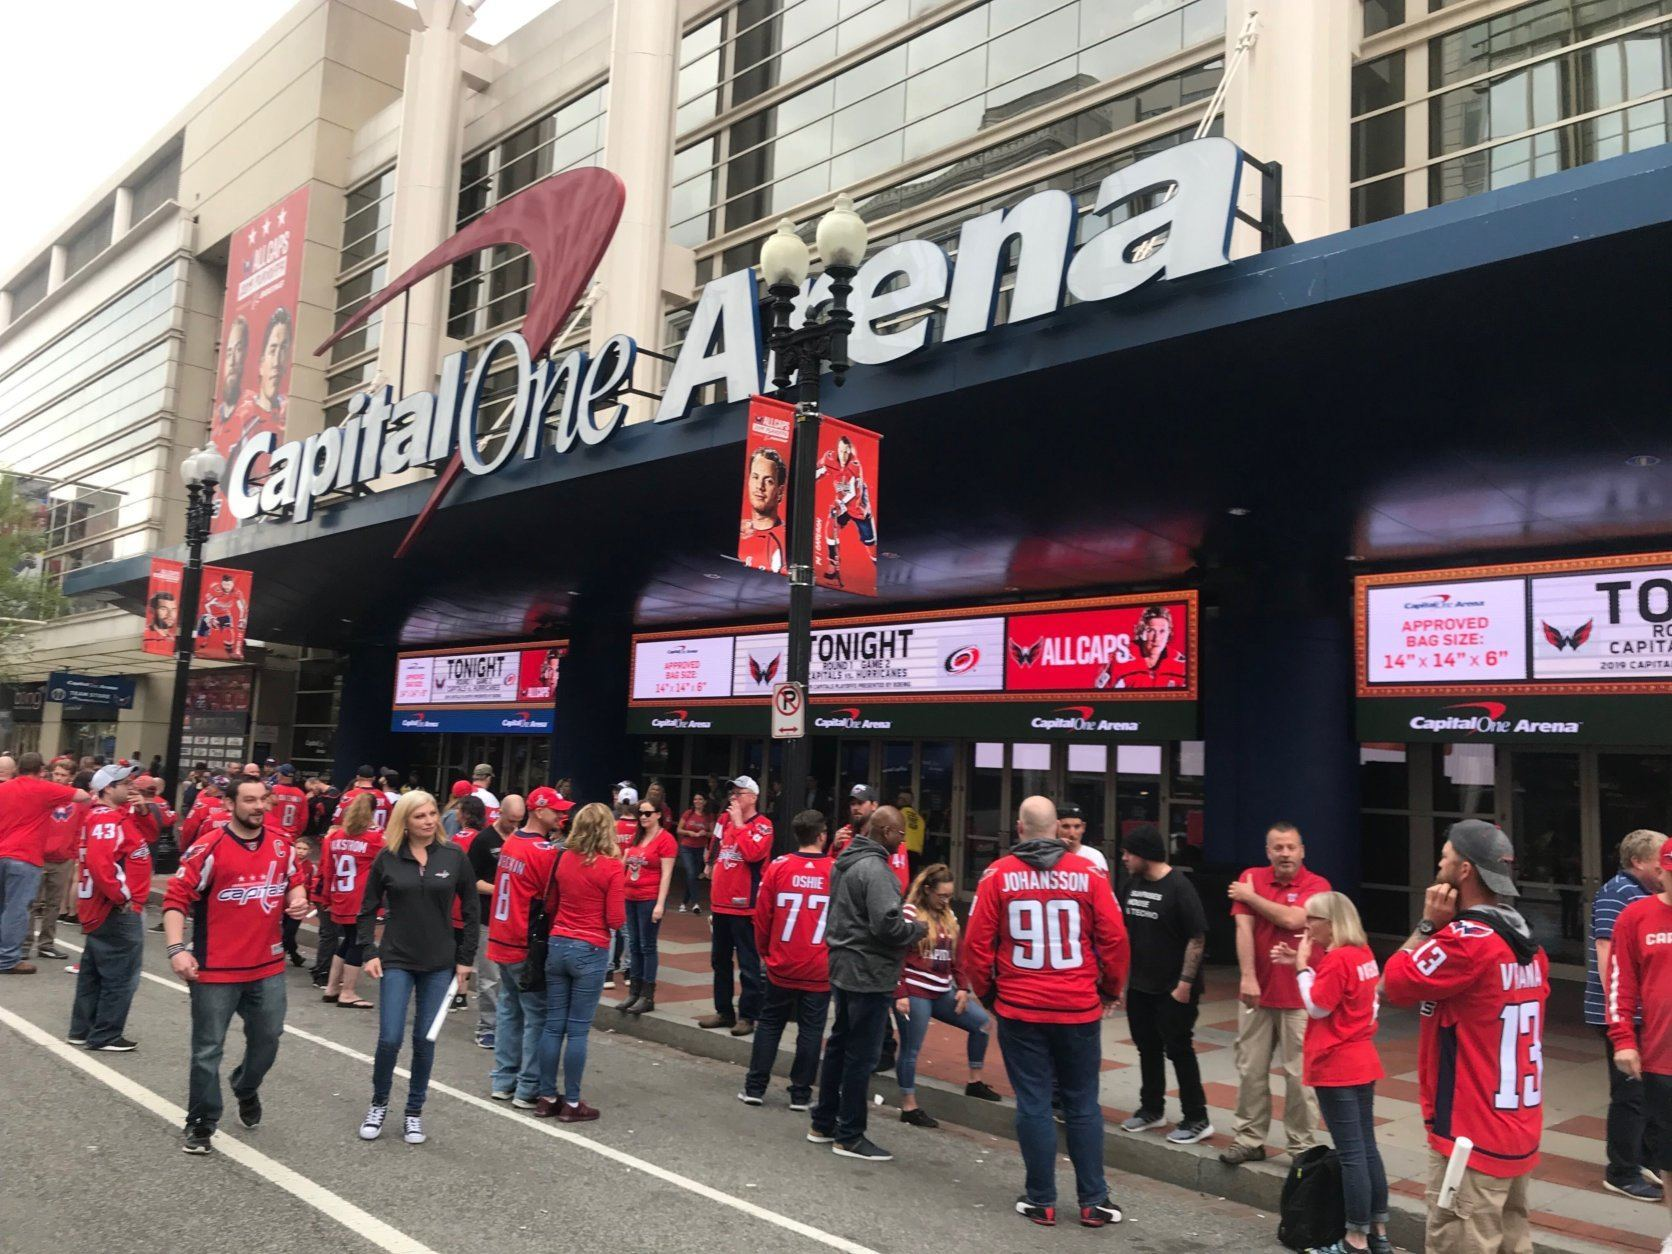 Fans in downtown D.C. celebrate a Caps win against the Carolina Hurricanes. (WTOP/Dick Uliano)